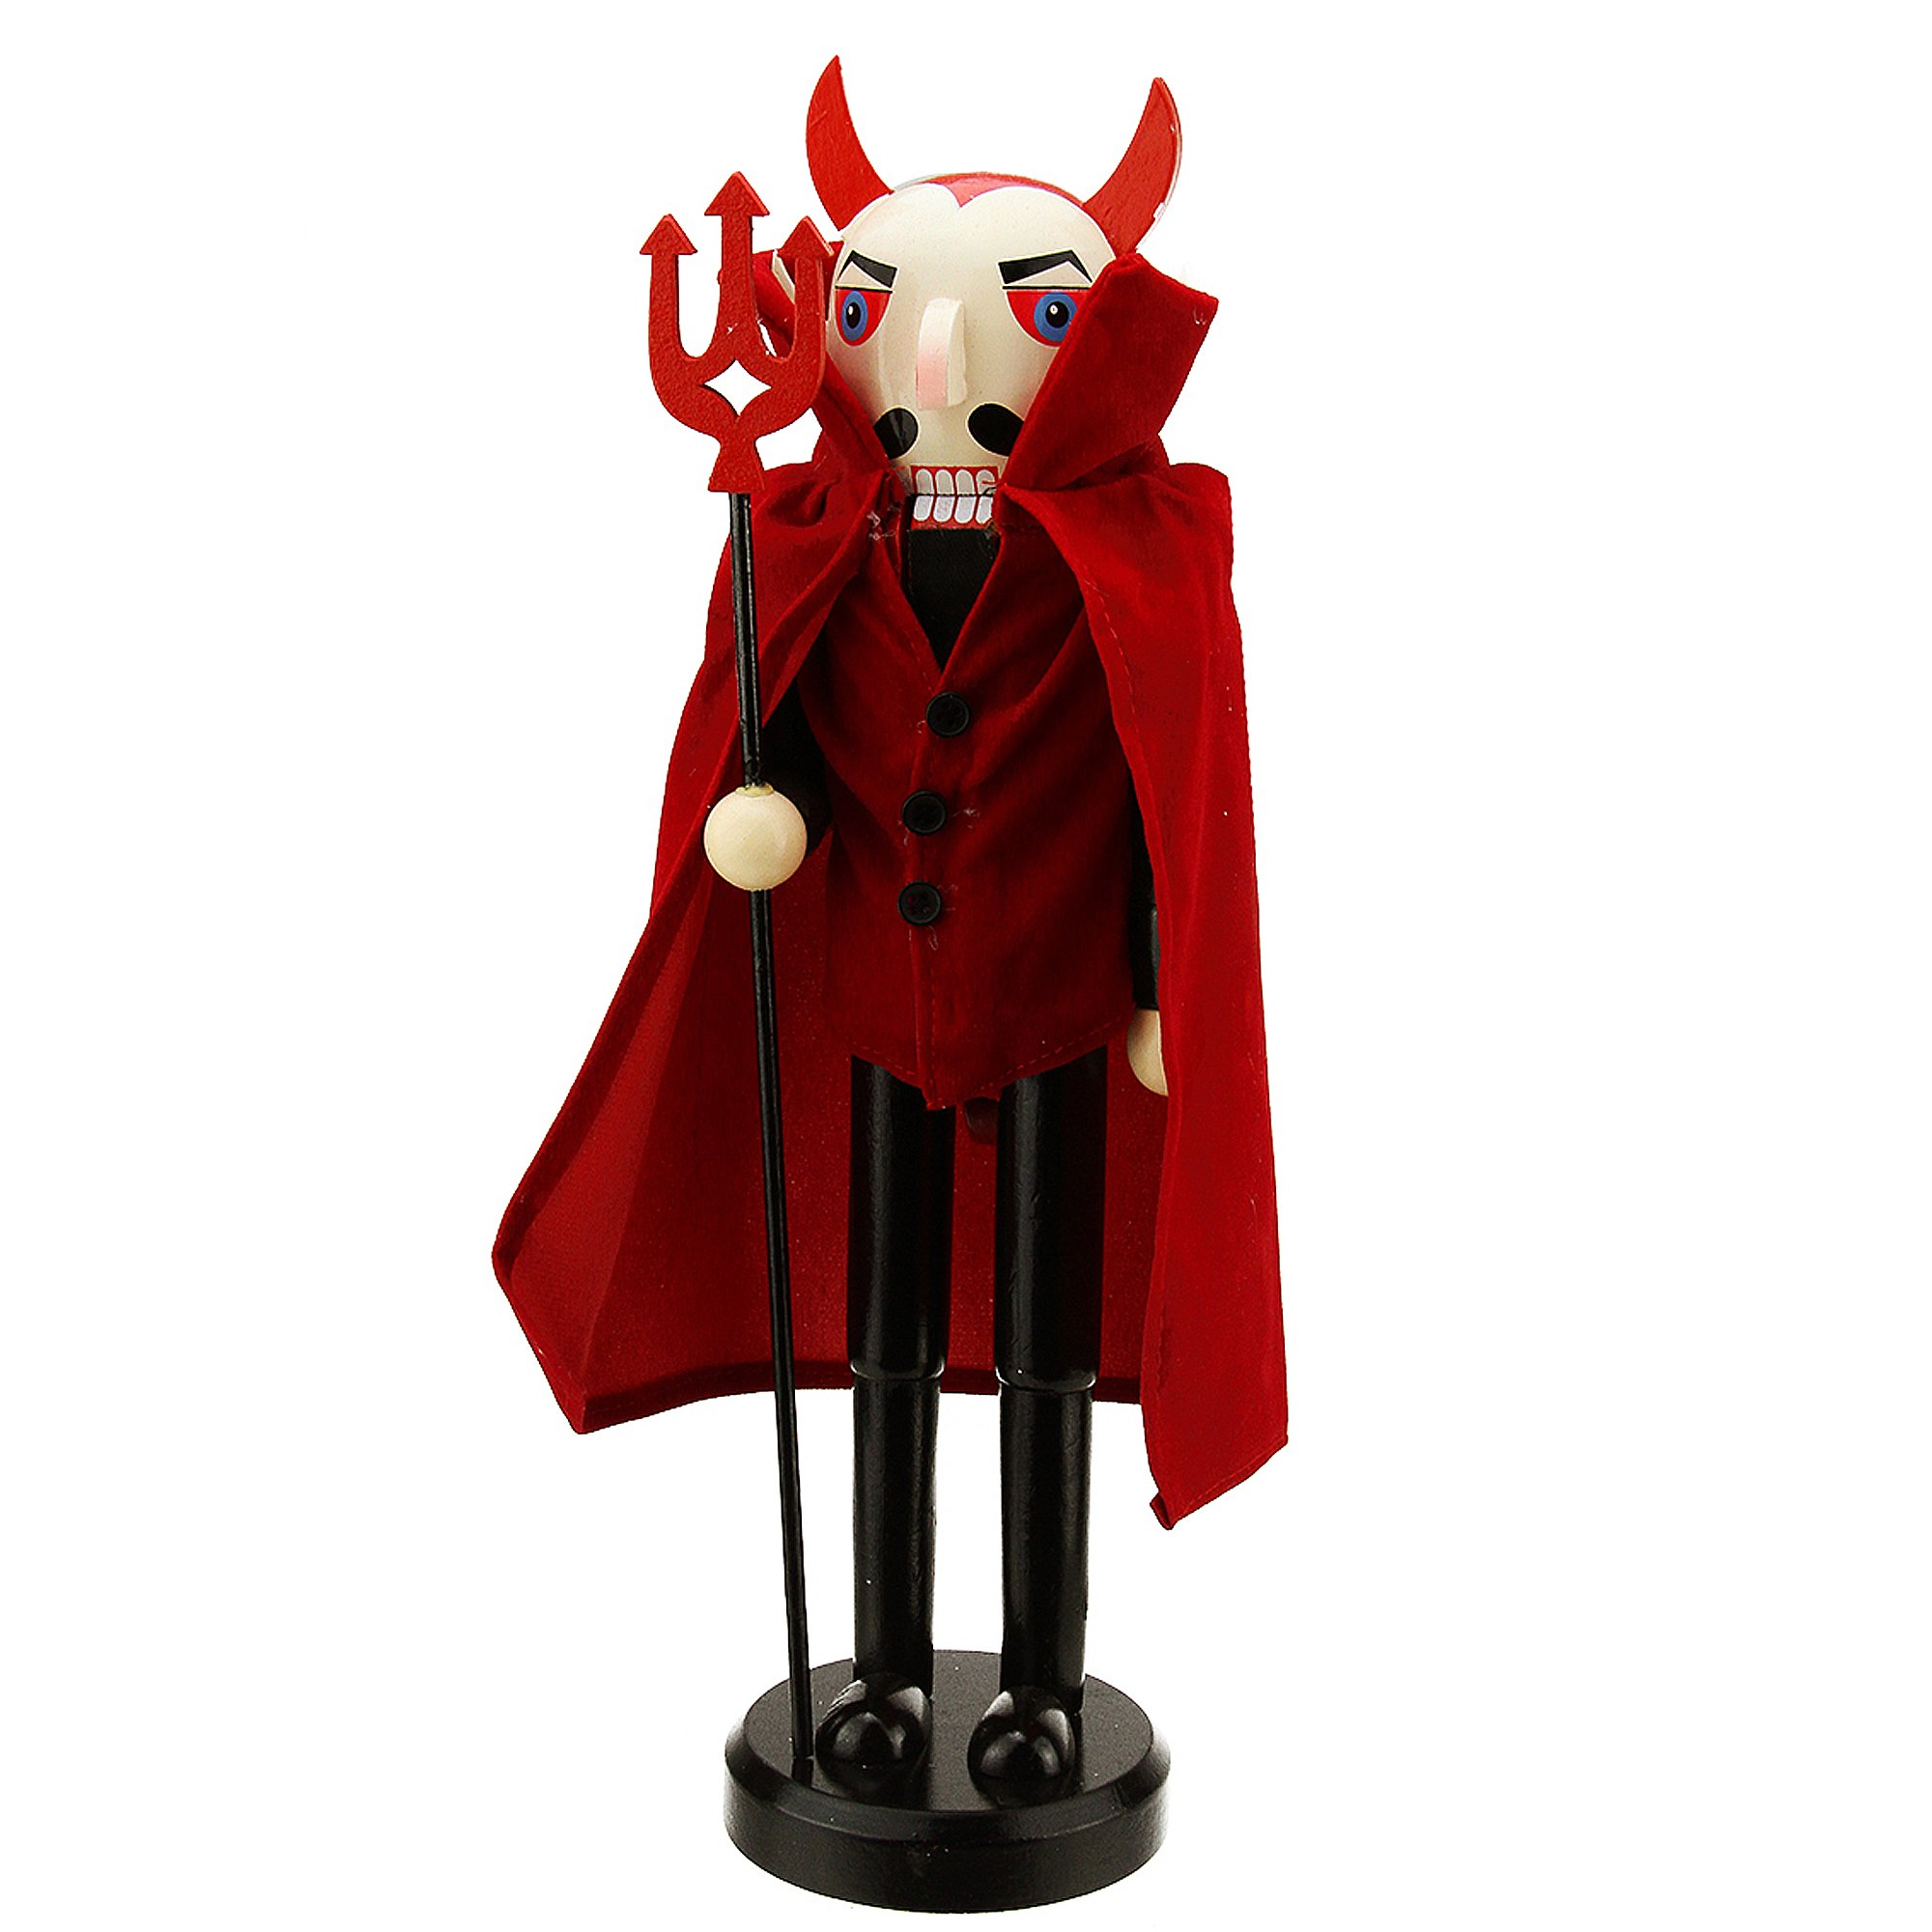 Northlight Red Devil Decorative Wooden Halloween Nutcracker Holding A Pitch Fork, 14'' by Northlight (Image #1)